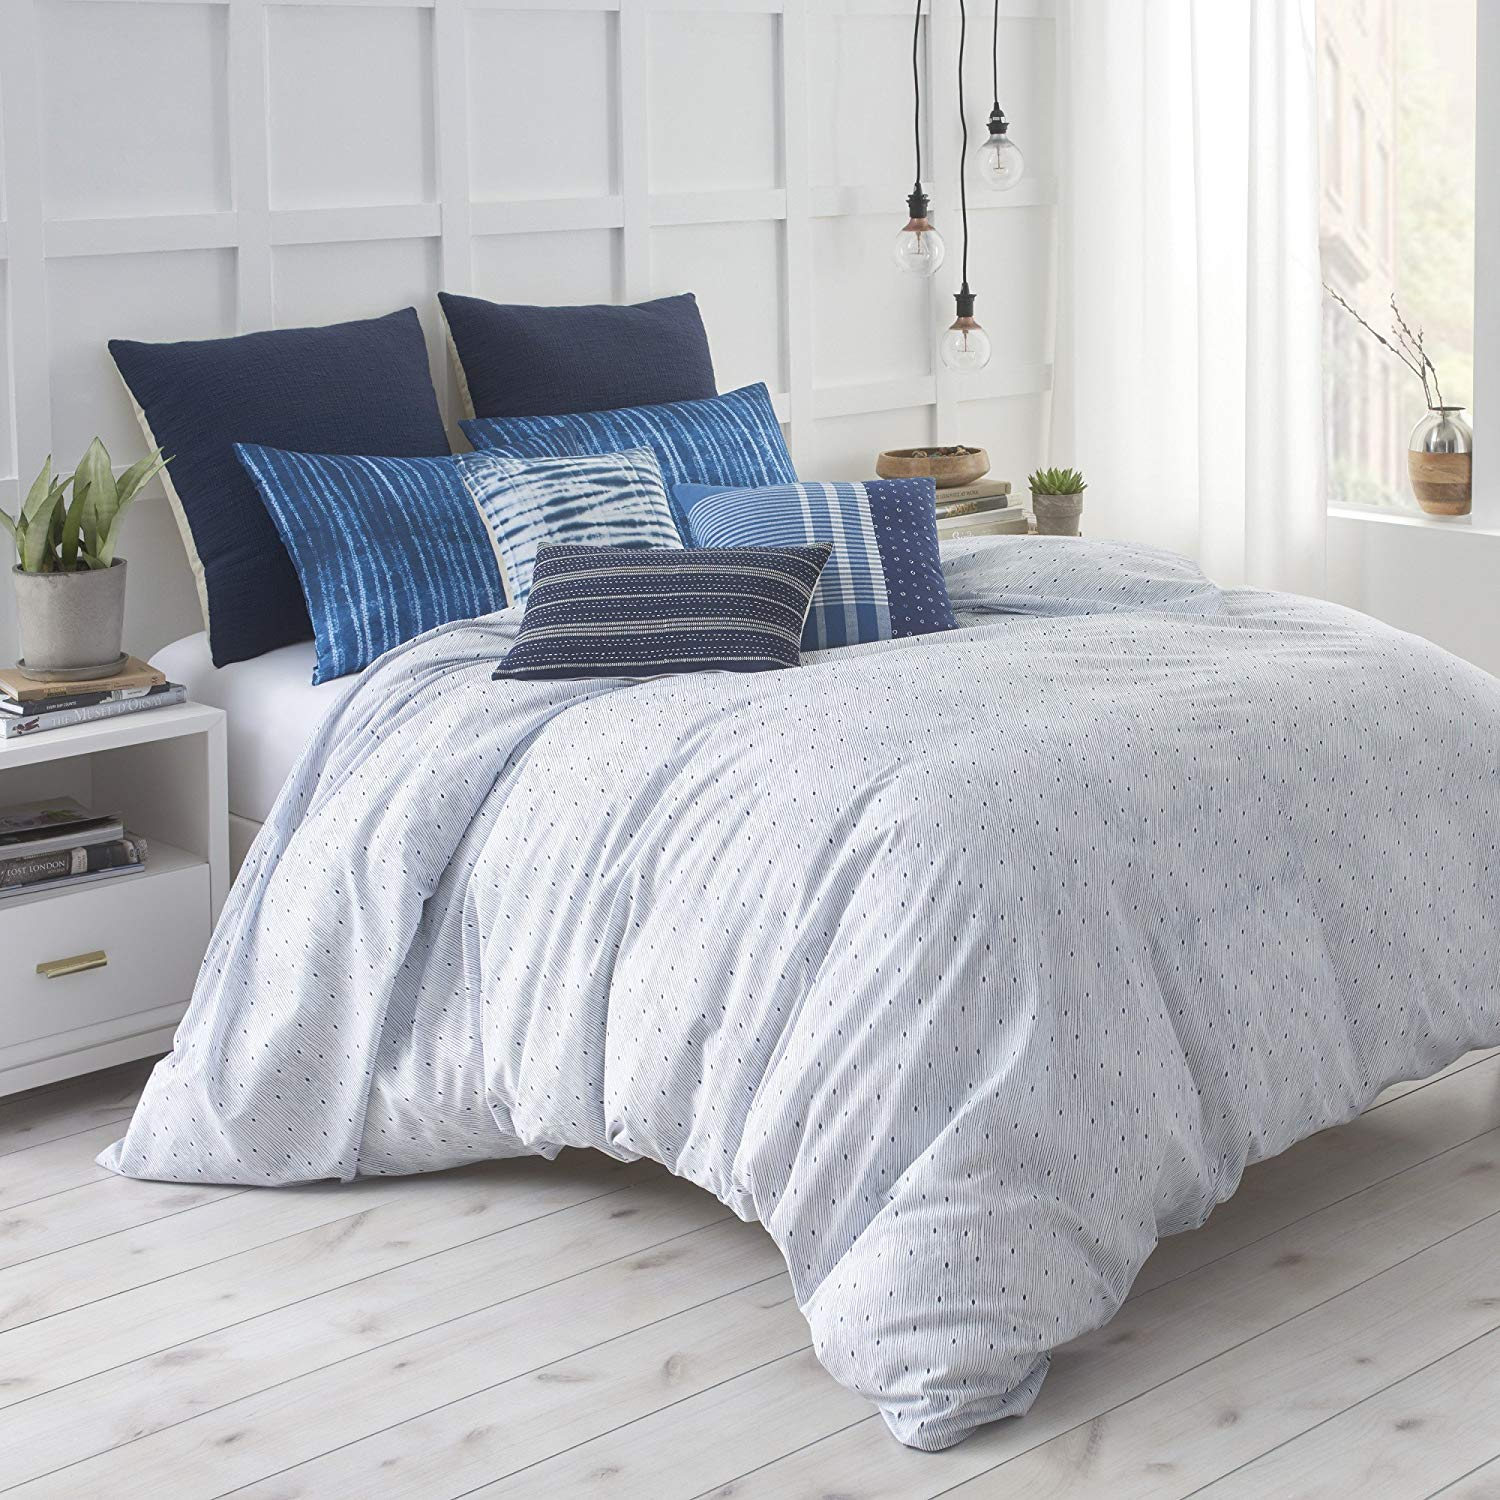 Organic Cotton Shibori Chic Duvet Cover Set Full/Queen - My Simple Changes